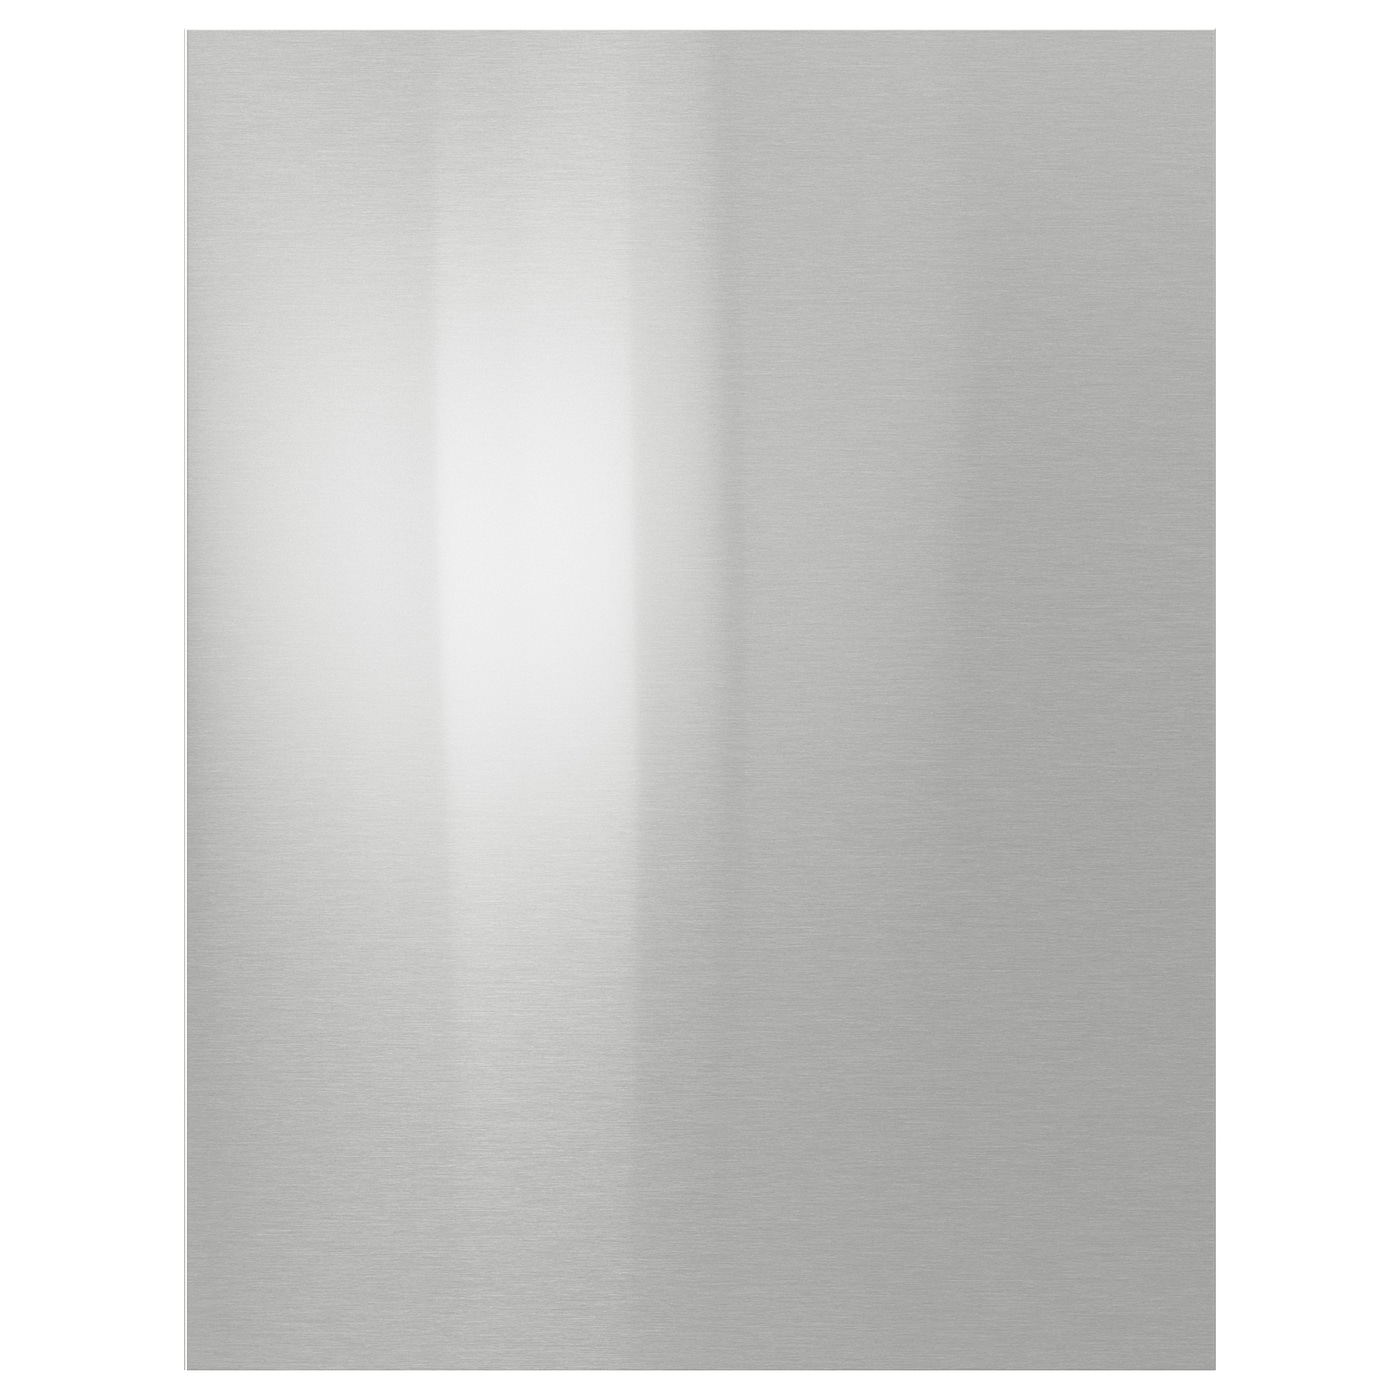 Pannelli Rivestimento Cucina Ikea grevsta cover panel - stainless steel 62x80 cm